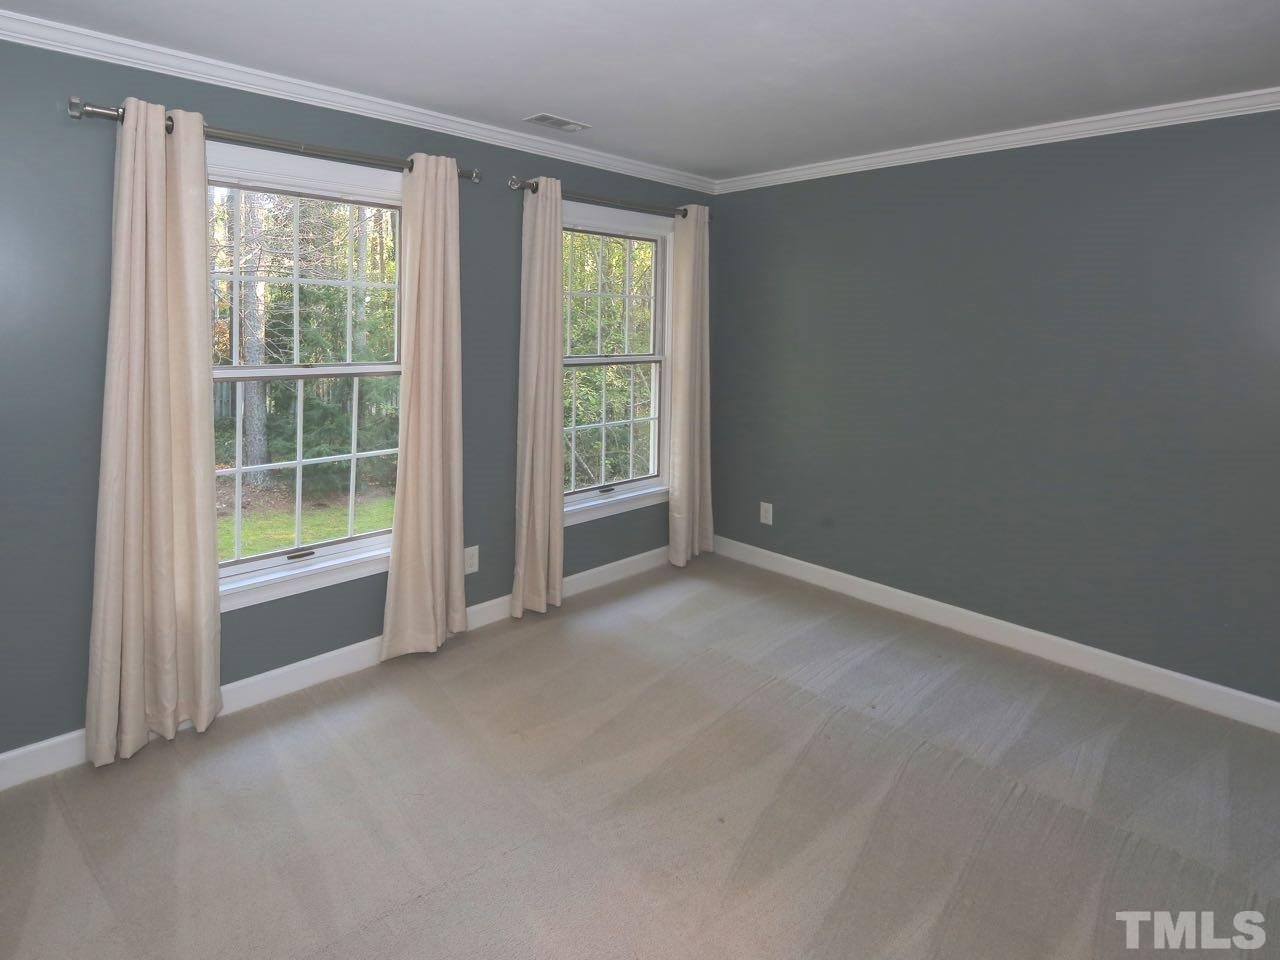 There are a total of 4 bedrooms and 2.5 bathrooms.